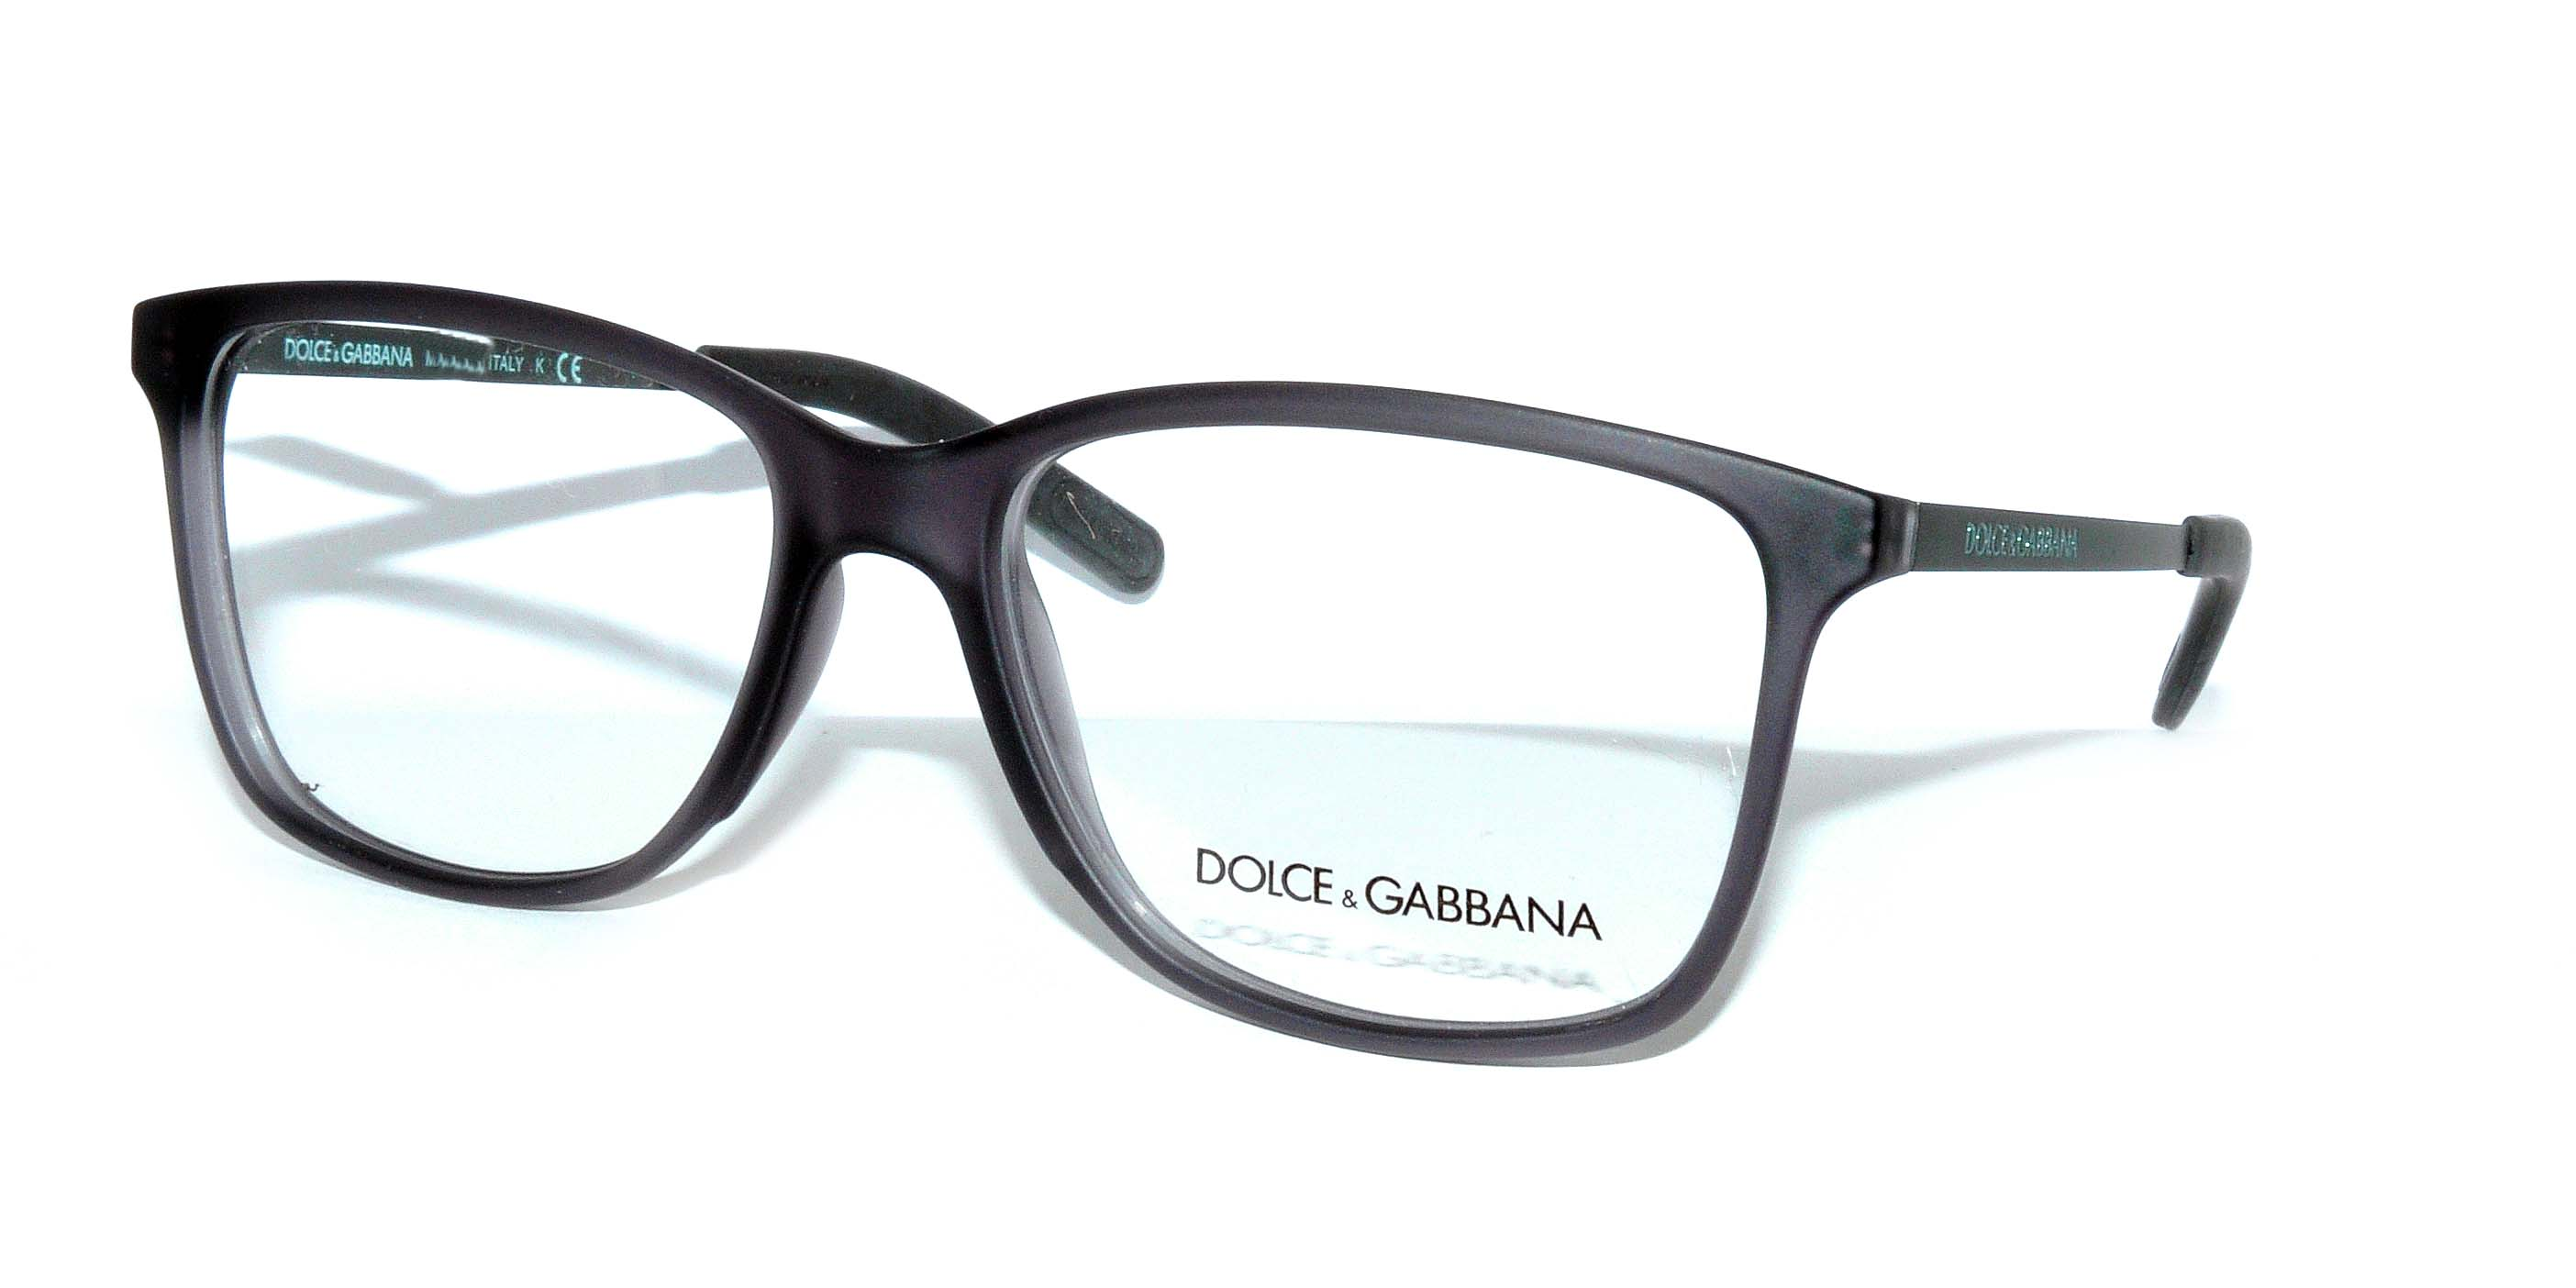 dolce gabbana model dg 5006 colour code 2651 frame colour